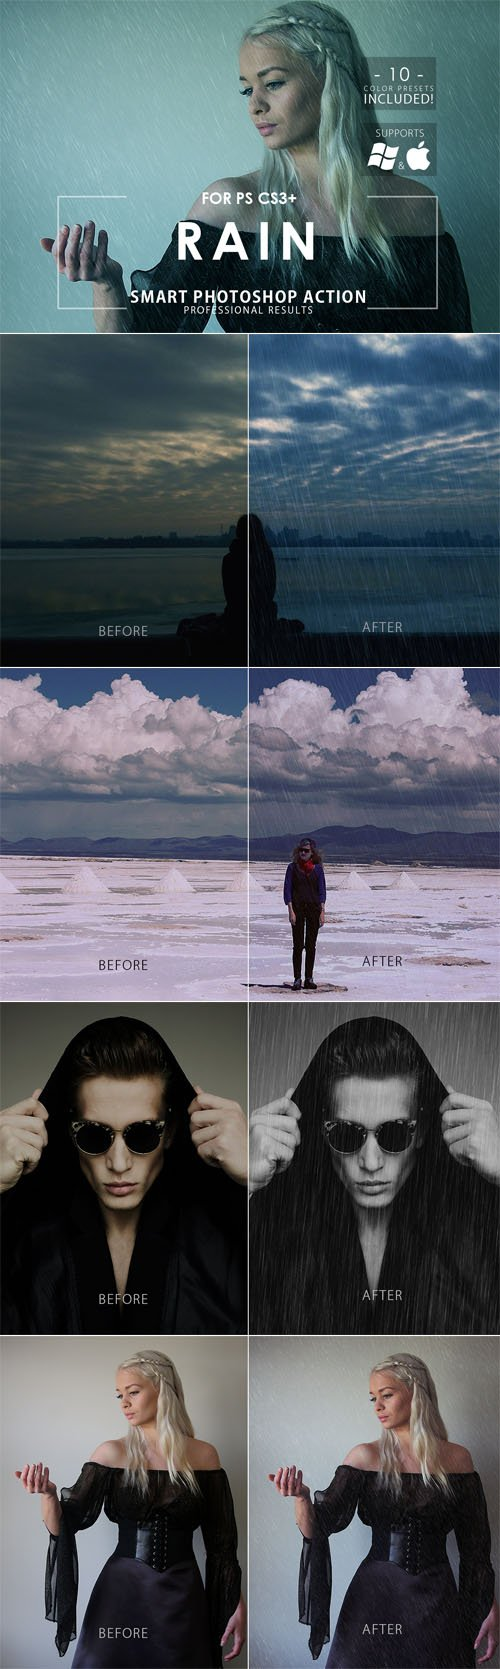 Rain Effect Photoshop Action